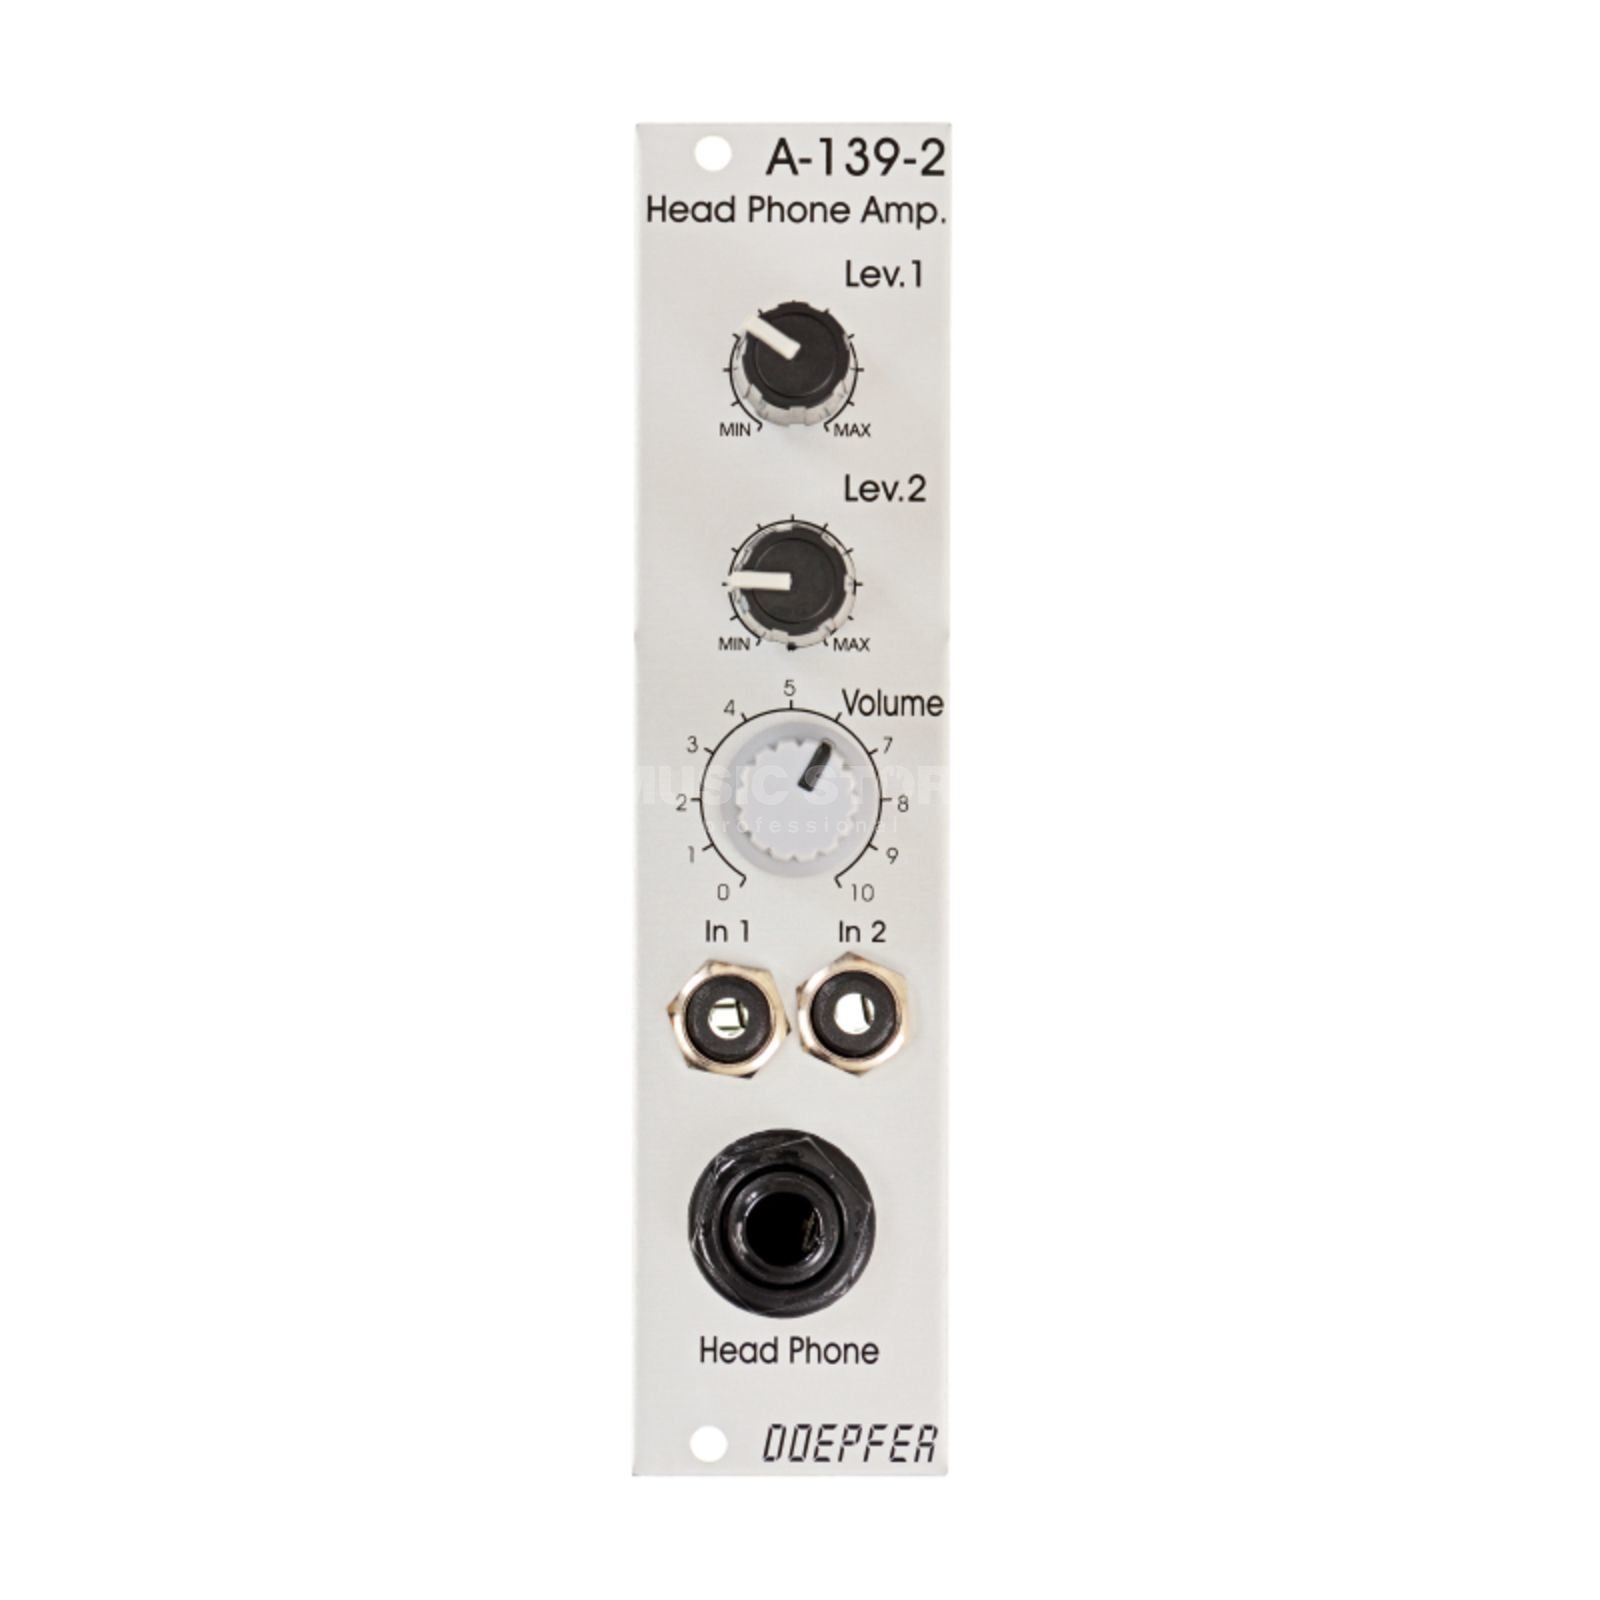 Doepfer A-139-2 Headphone Amplifier II Product Image